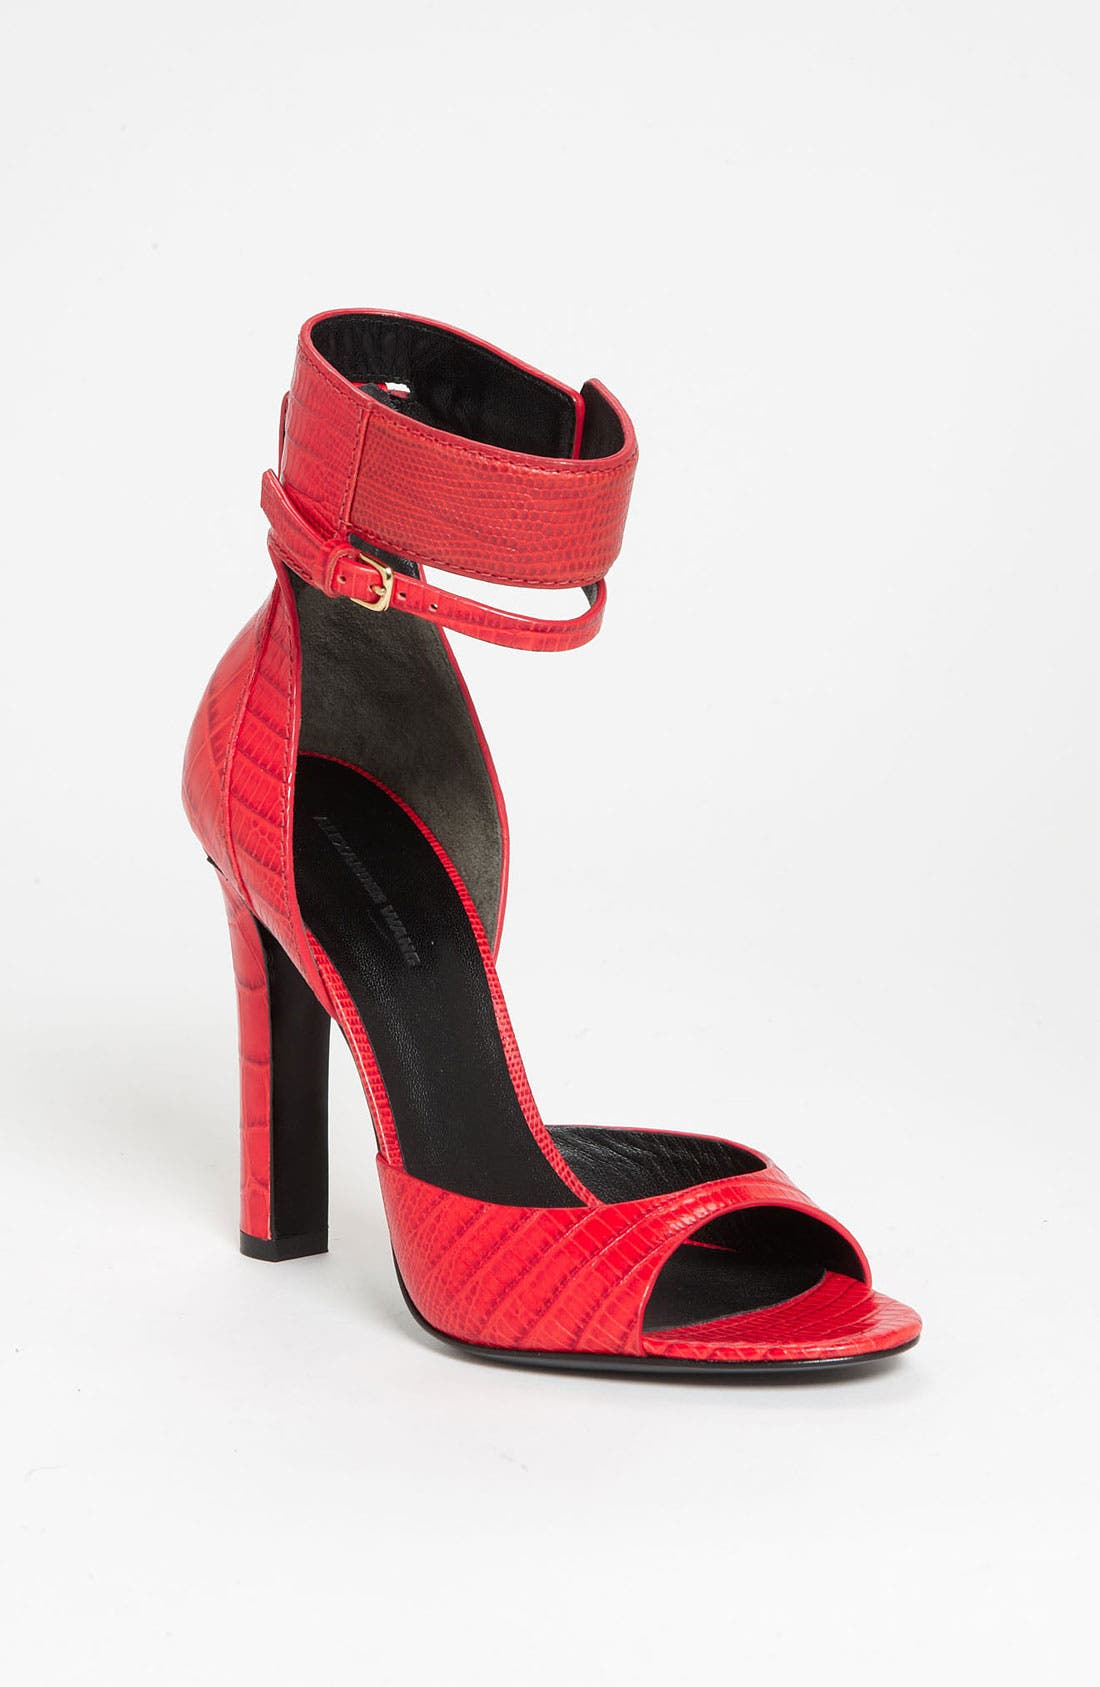 Alternate Image 1 Selected - Alexander Wang 'Aminata' Sandal